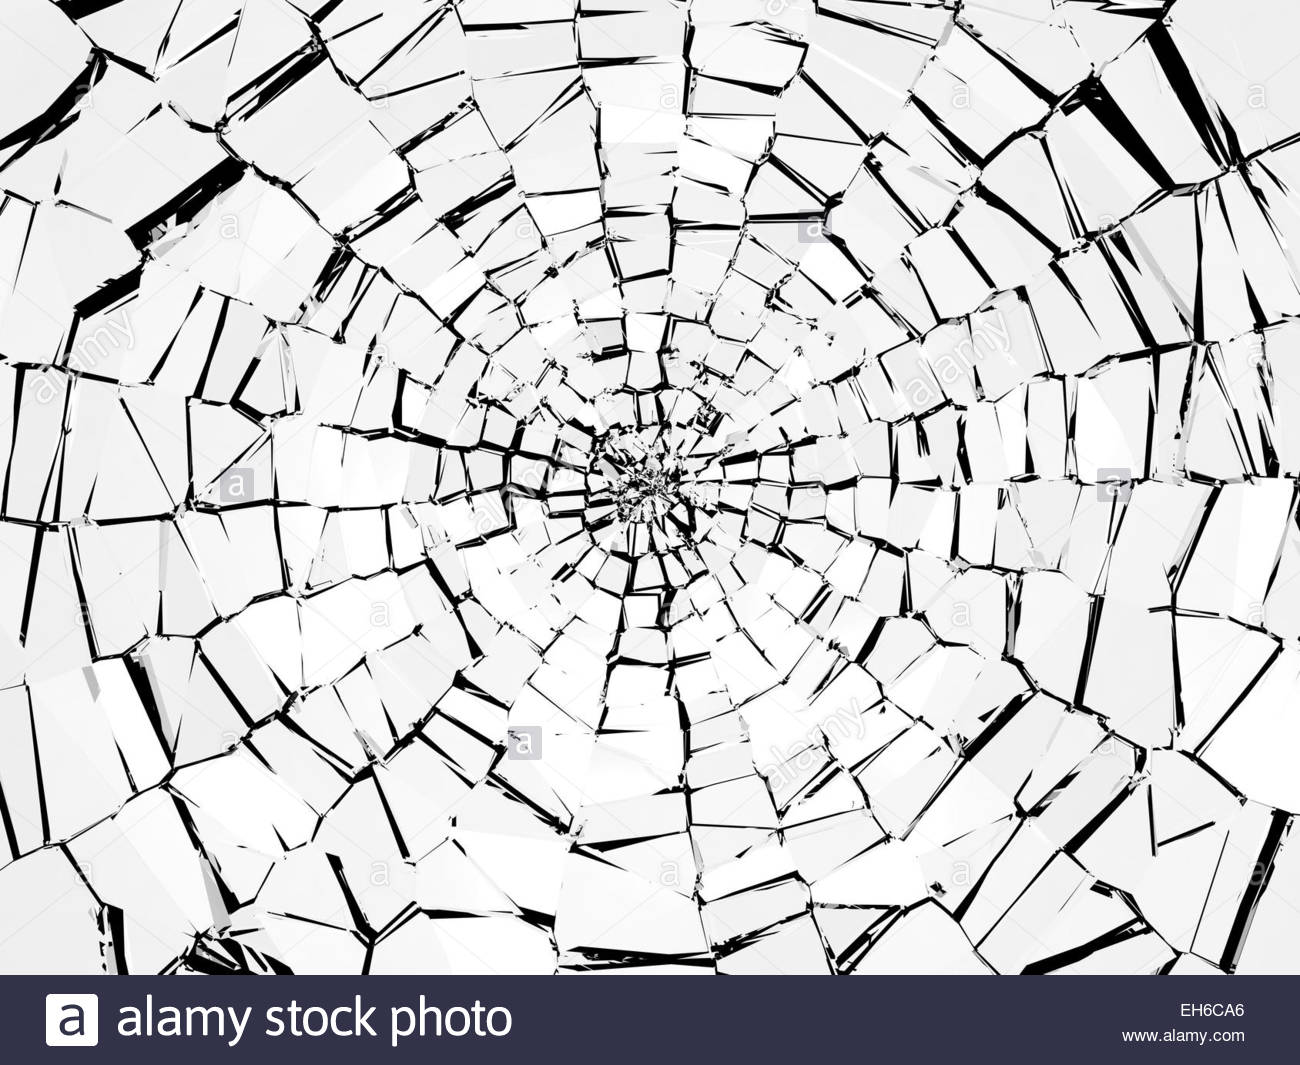 1300x1065 Damage And Wreck Abstract Broken Glass Pattern. Large Resolution